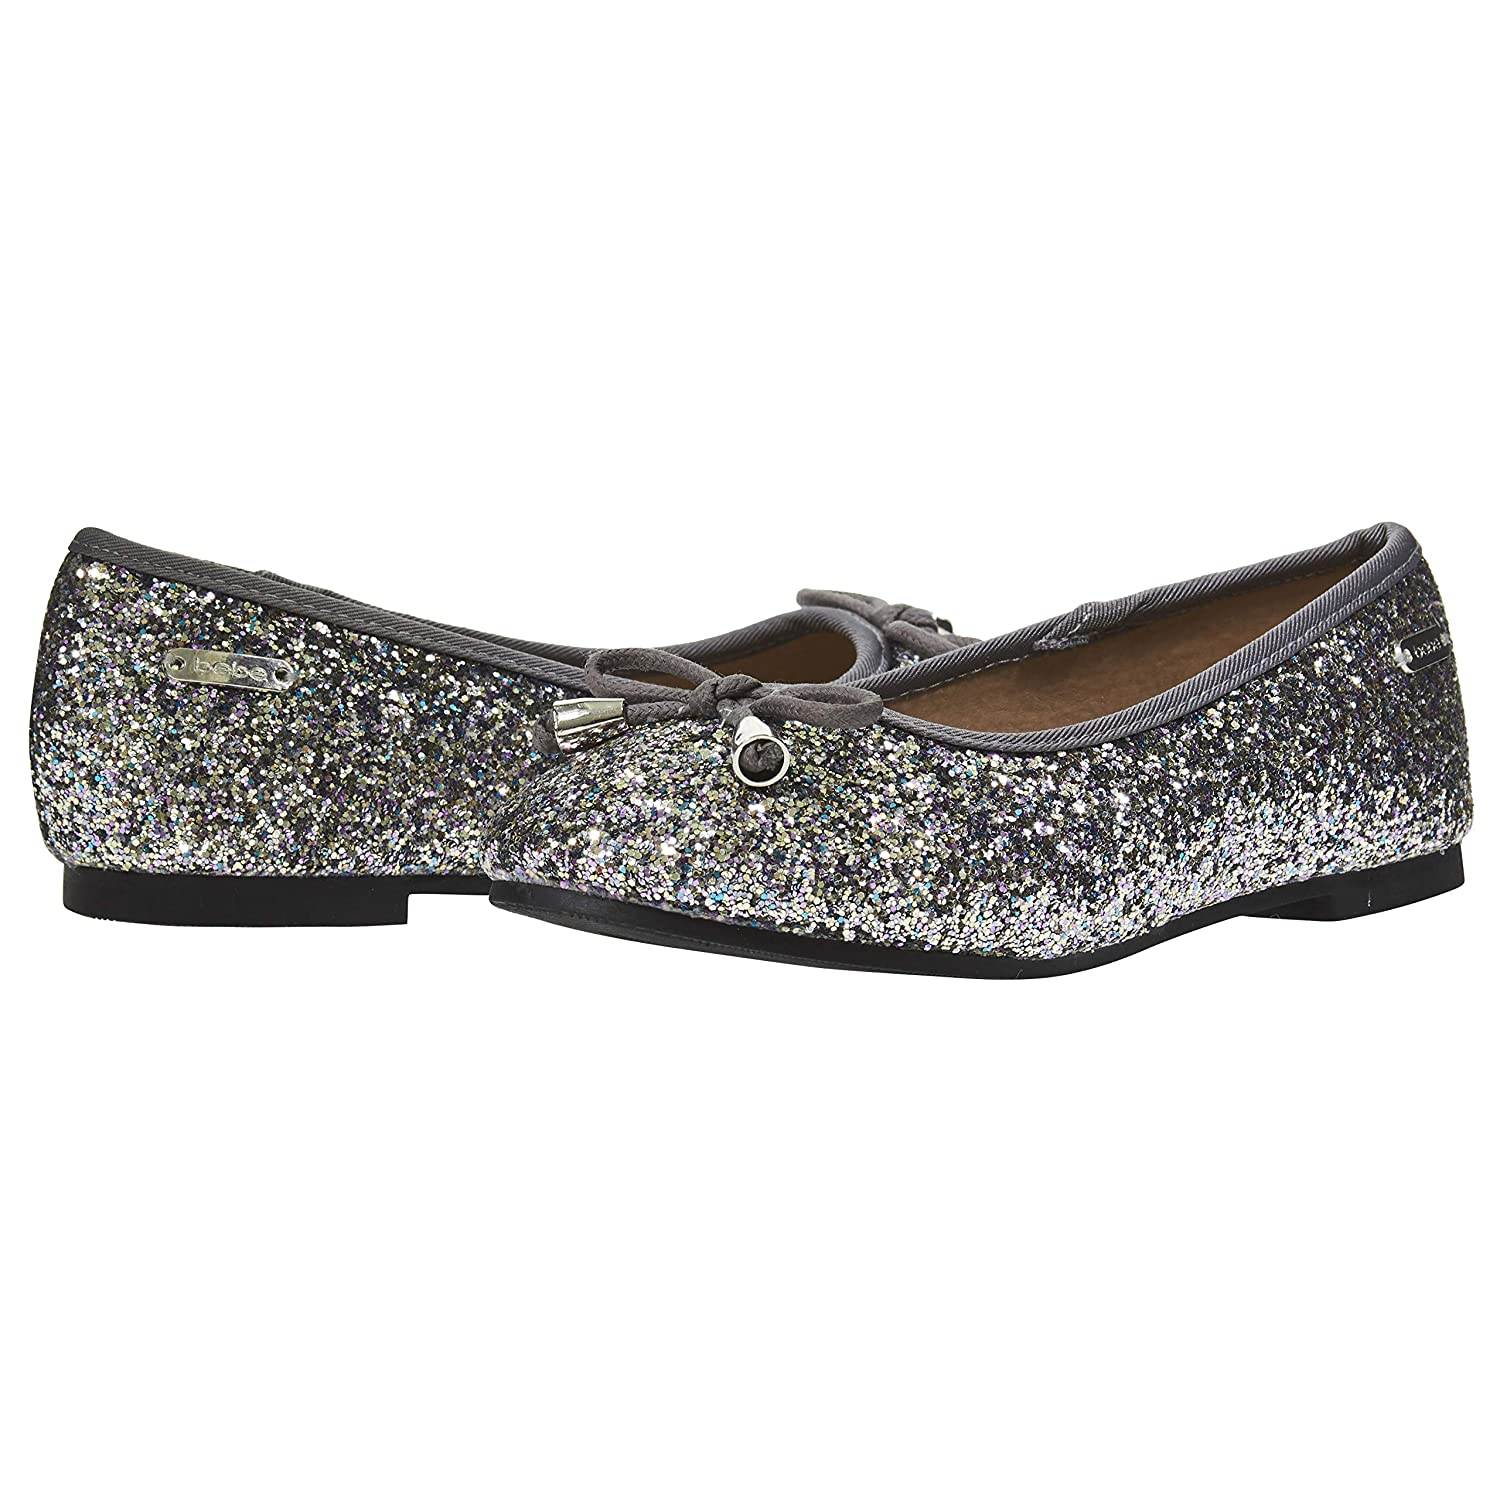 bebe Girls Flats Round Toe Chunky Glitter with Bow and Metallic Logo Hardware Slip-On Shoes Flexible PU Leather